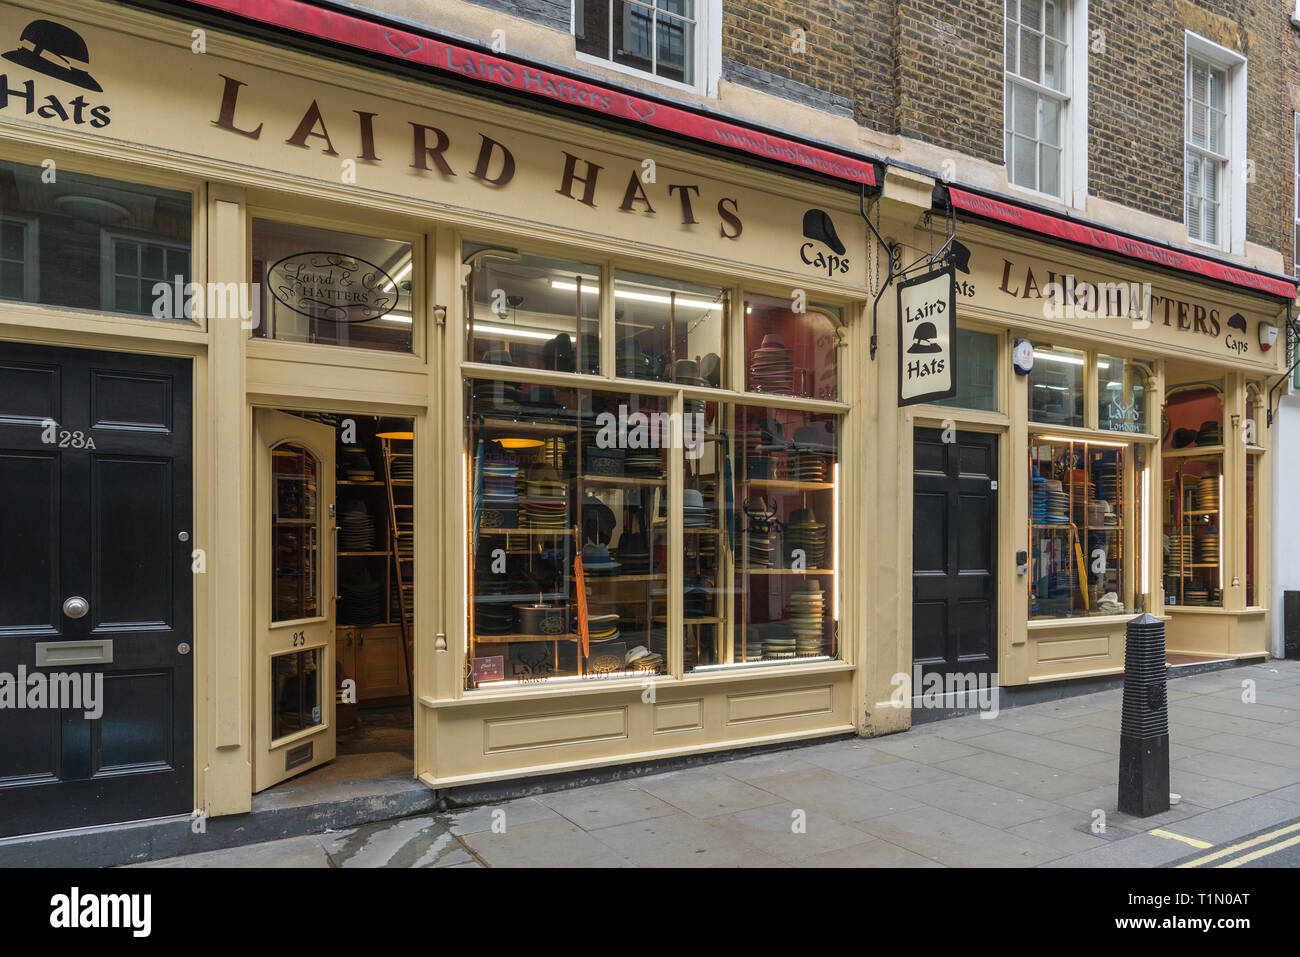 Laird Hatters millinery shop in New Row, Covent Garden, London, England, UK - Stock Image